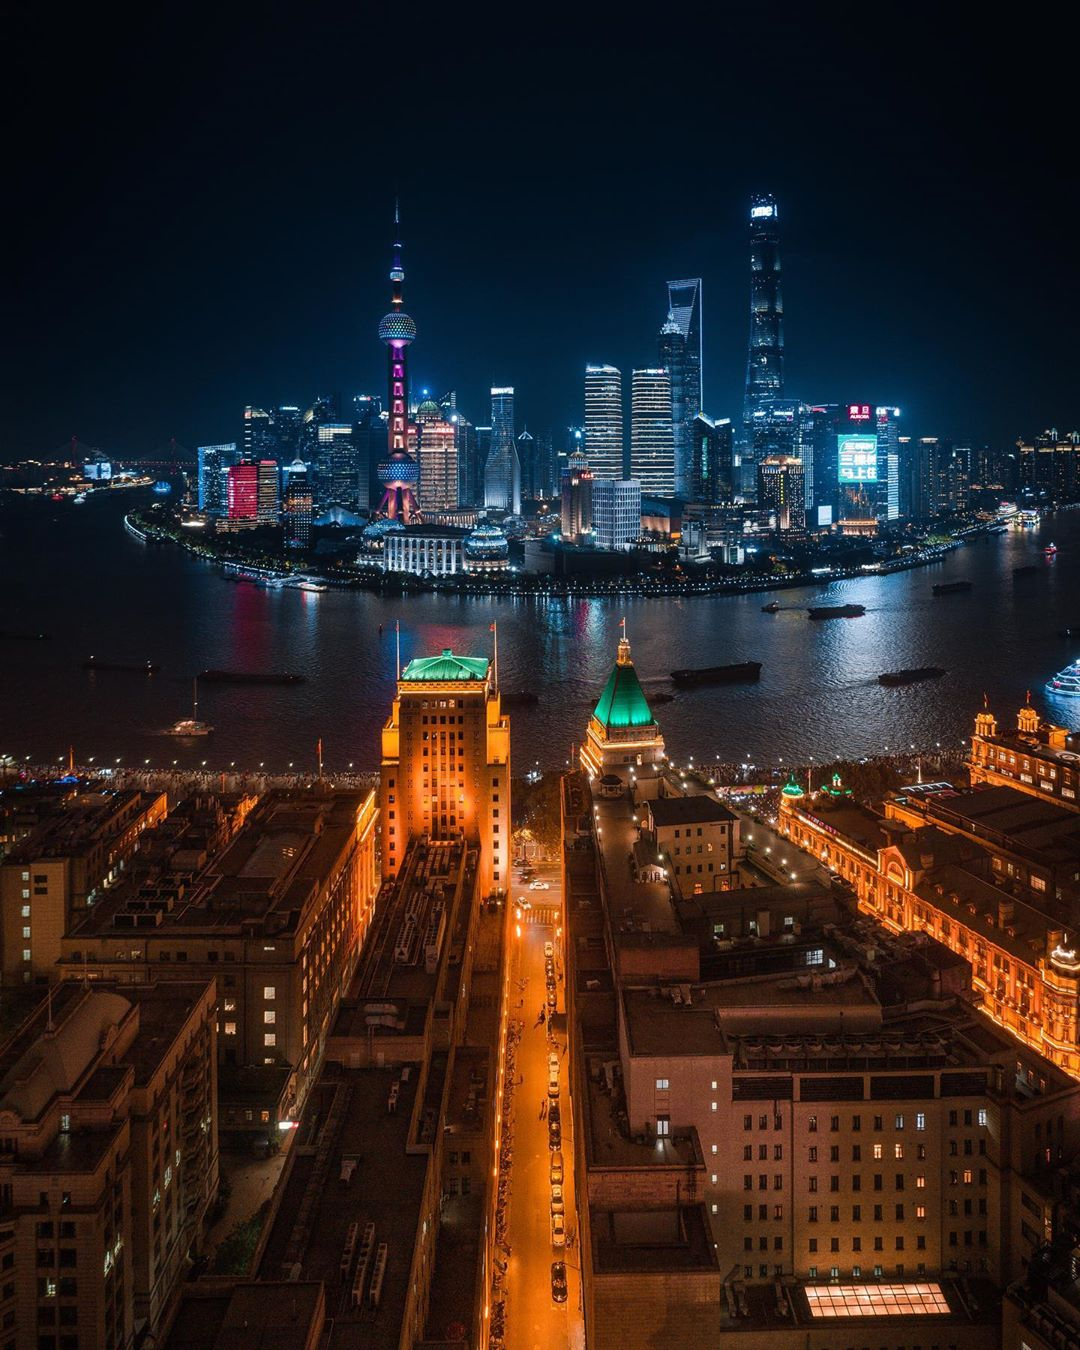 The Bund y Lujiazui